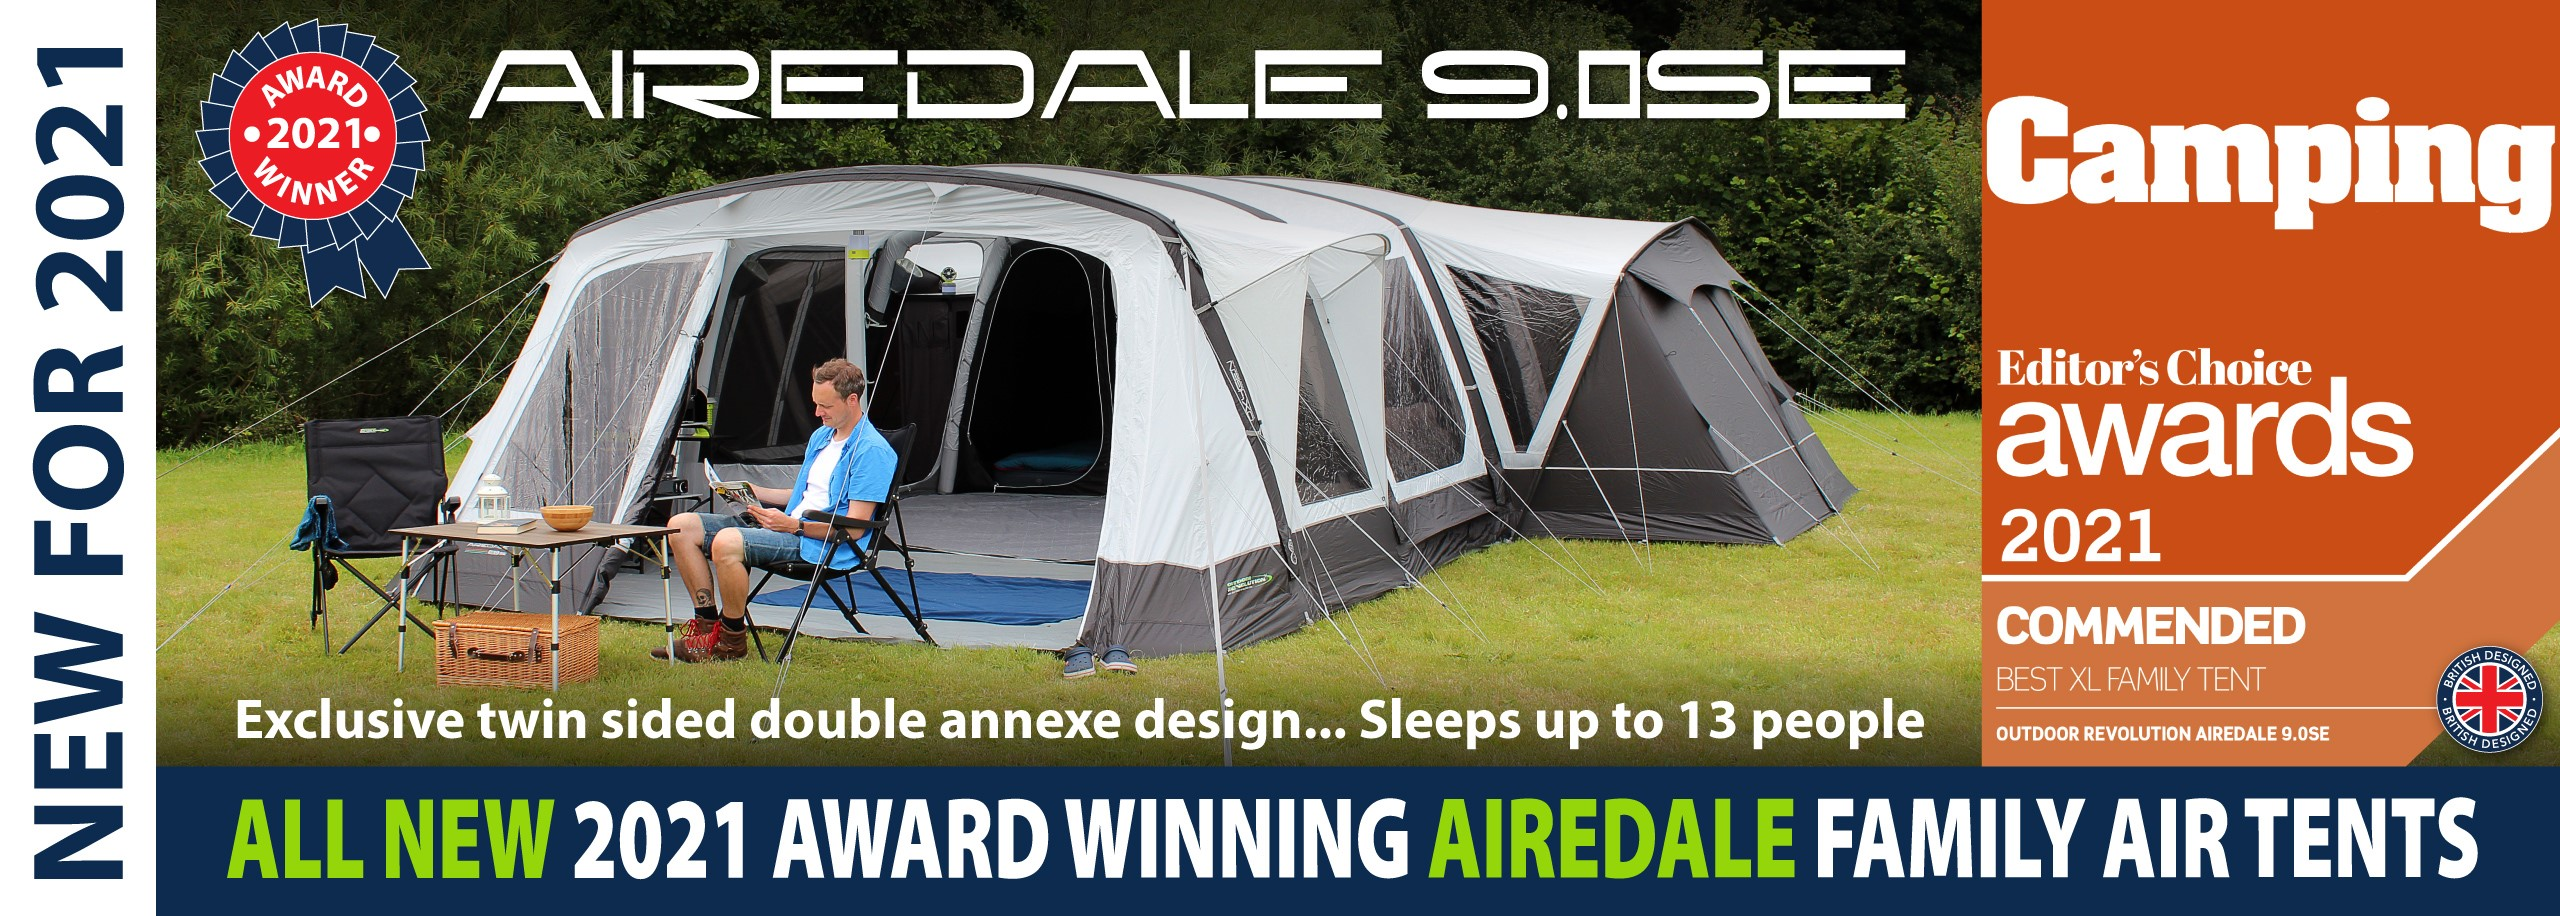 Airedale 9.0